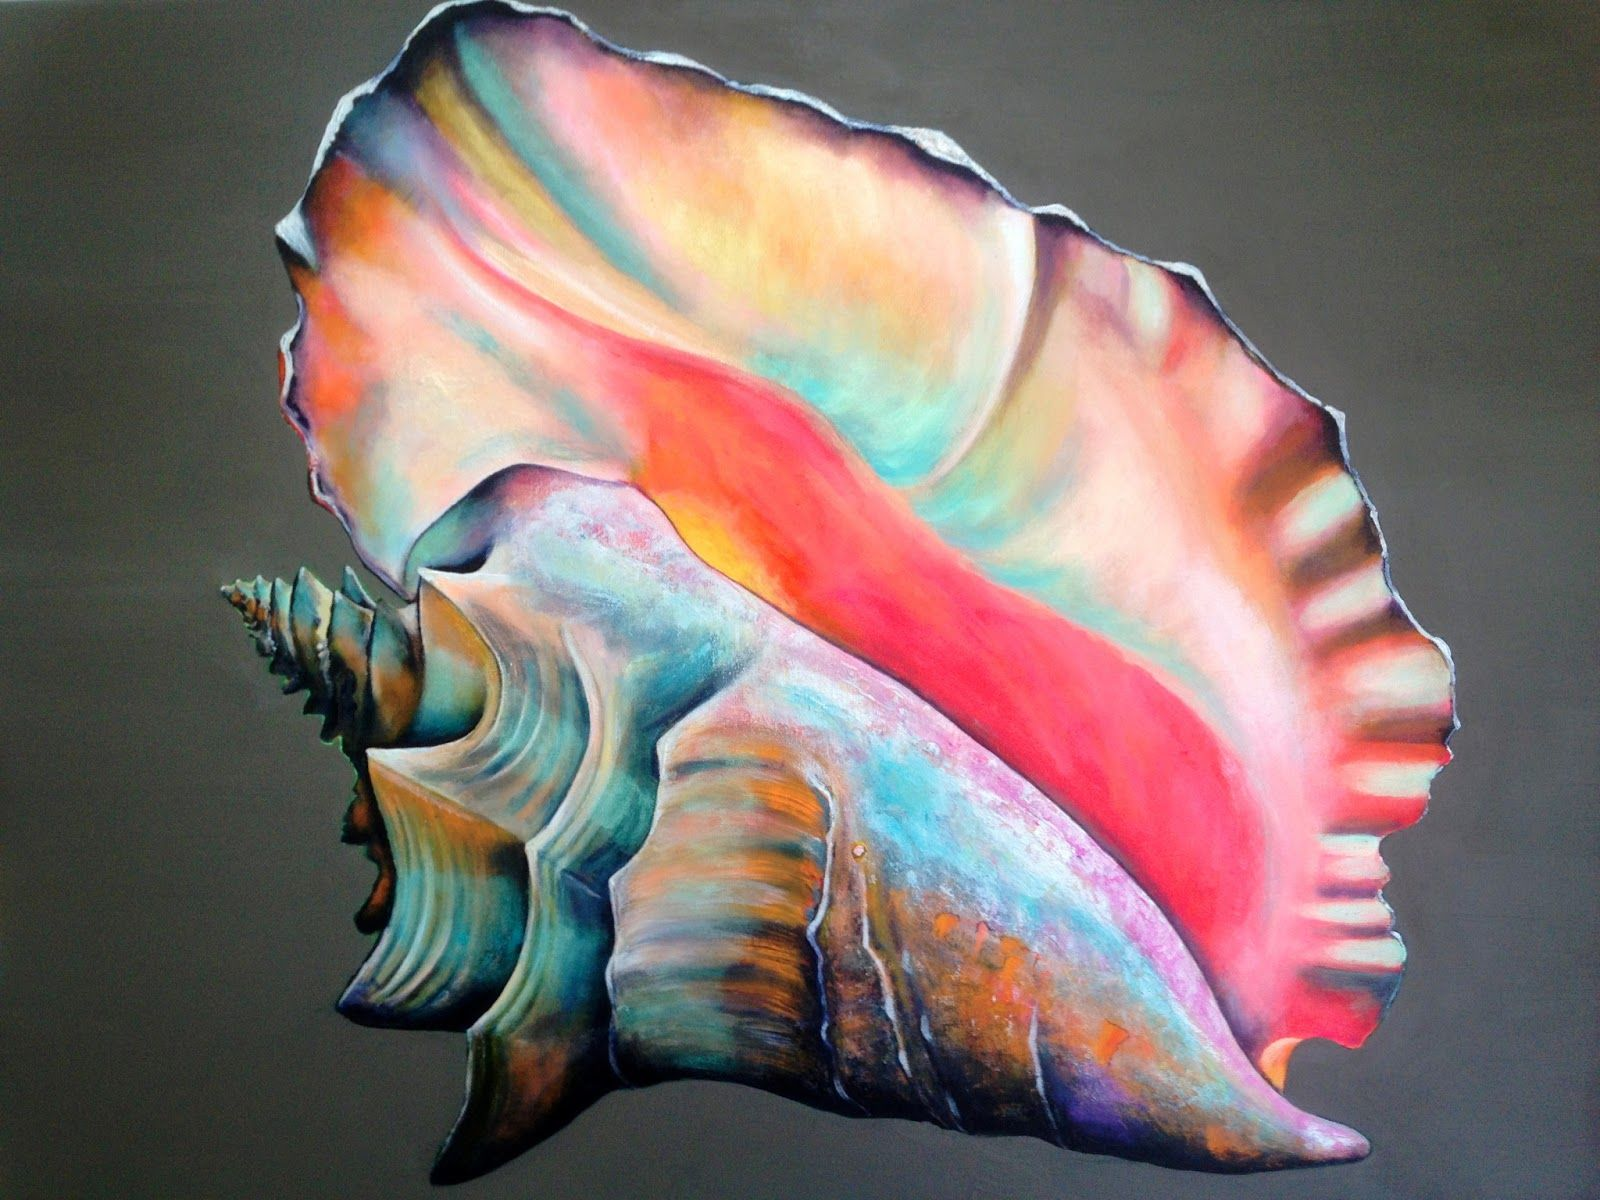 Conch Shell Paintings Google Search Sea Shell Project Pinterest Shell Painting Conch Shells And Conch Sea Shells Painted Shells Shell Art